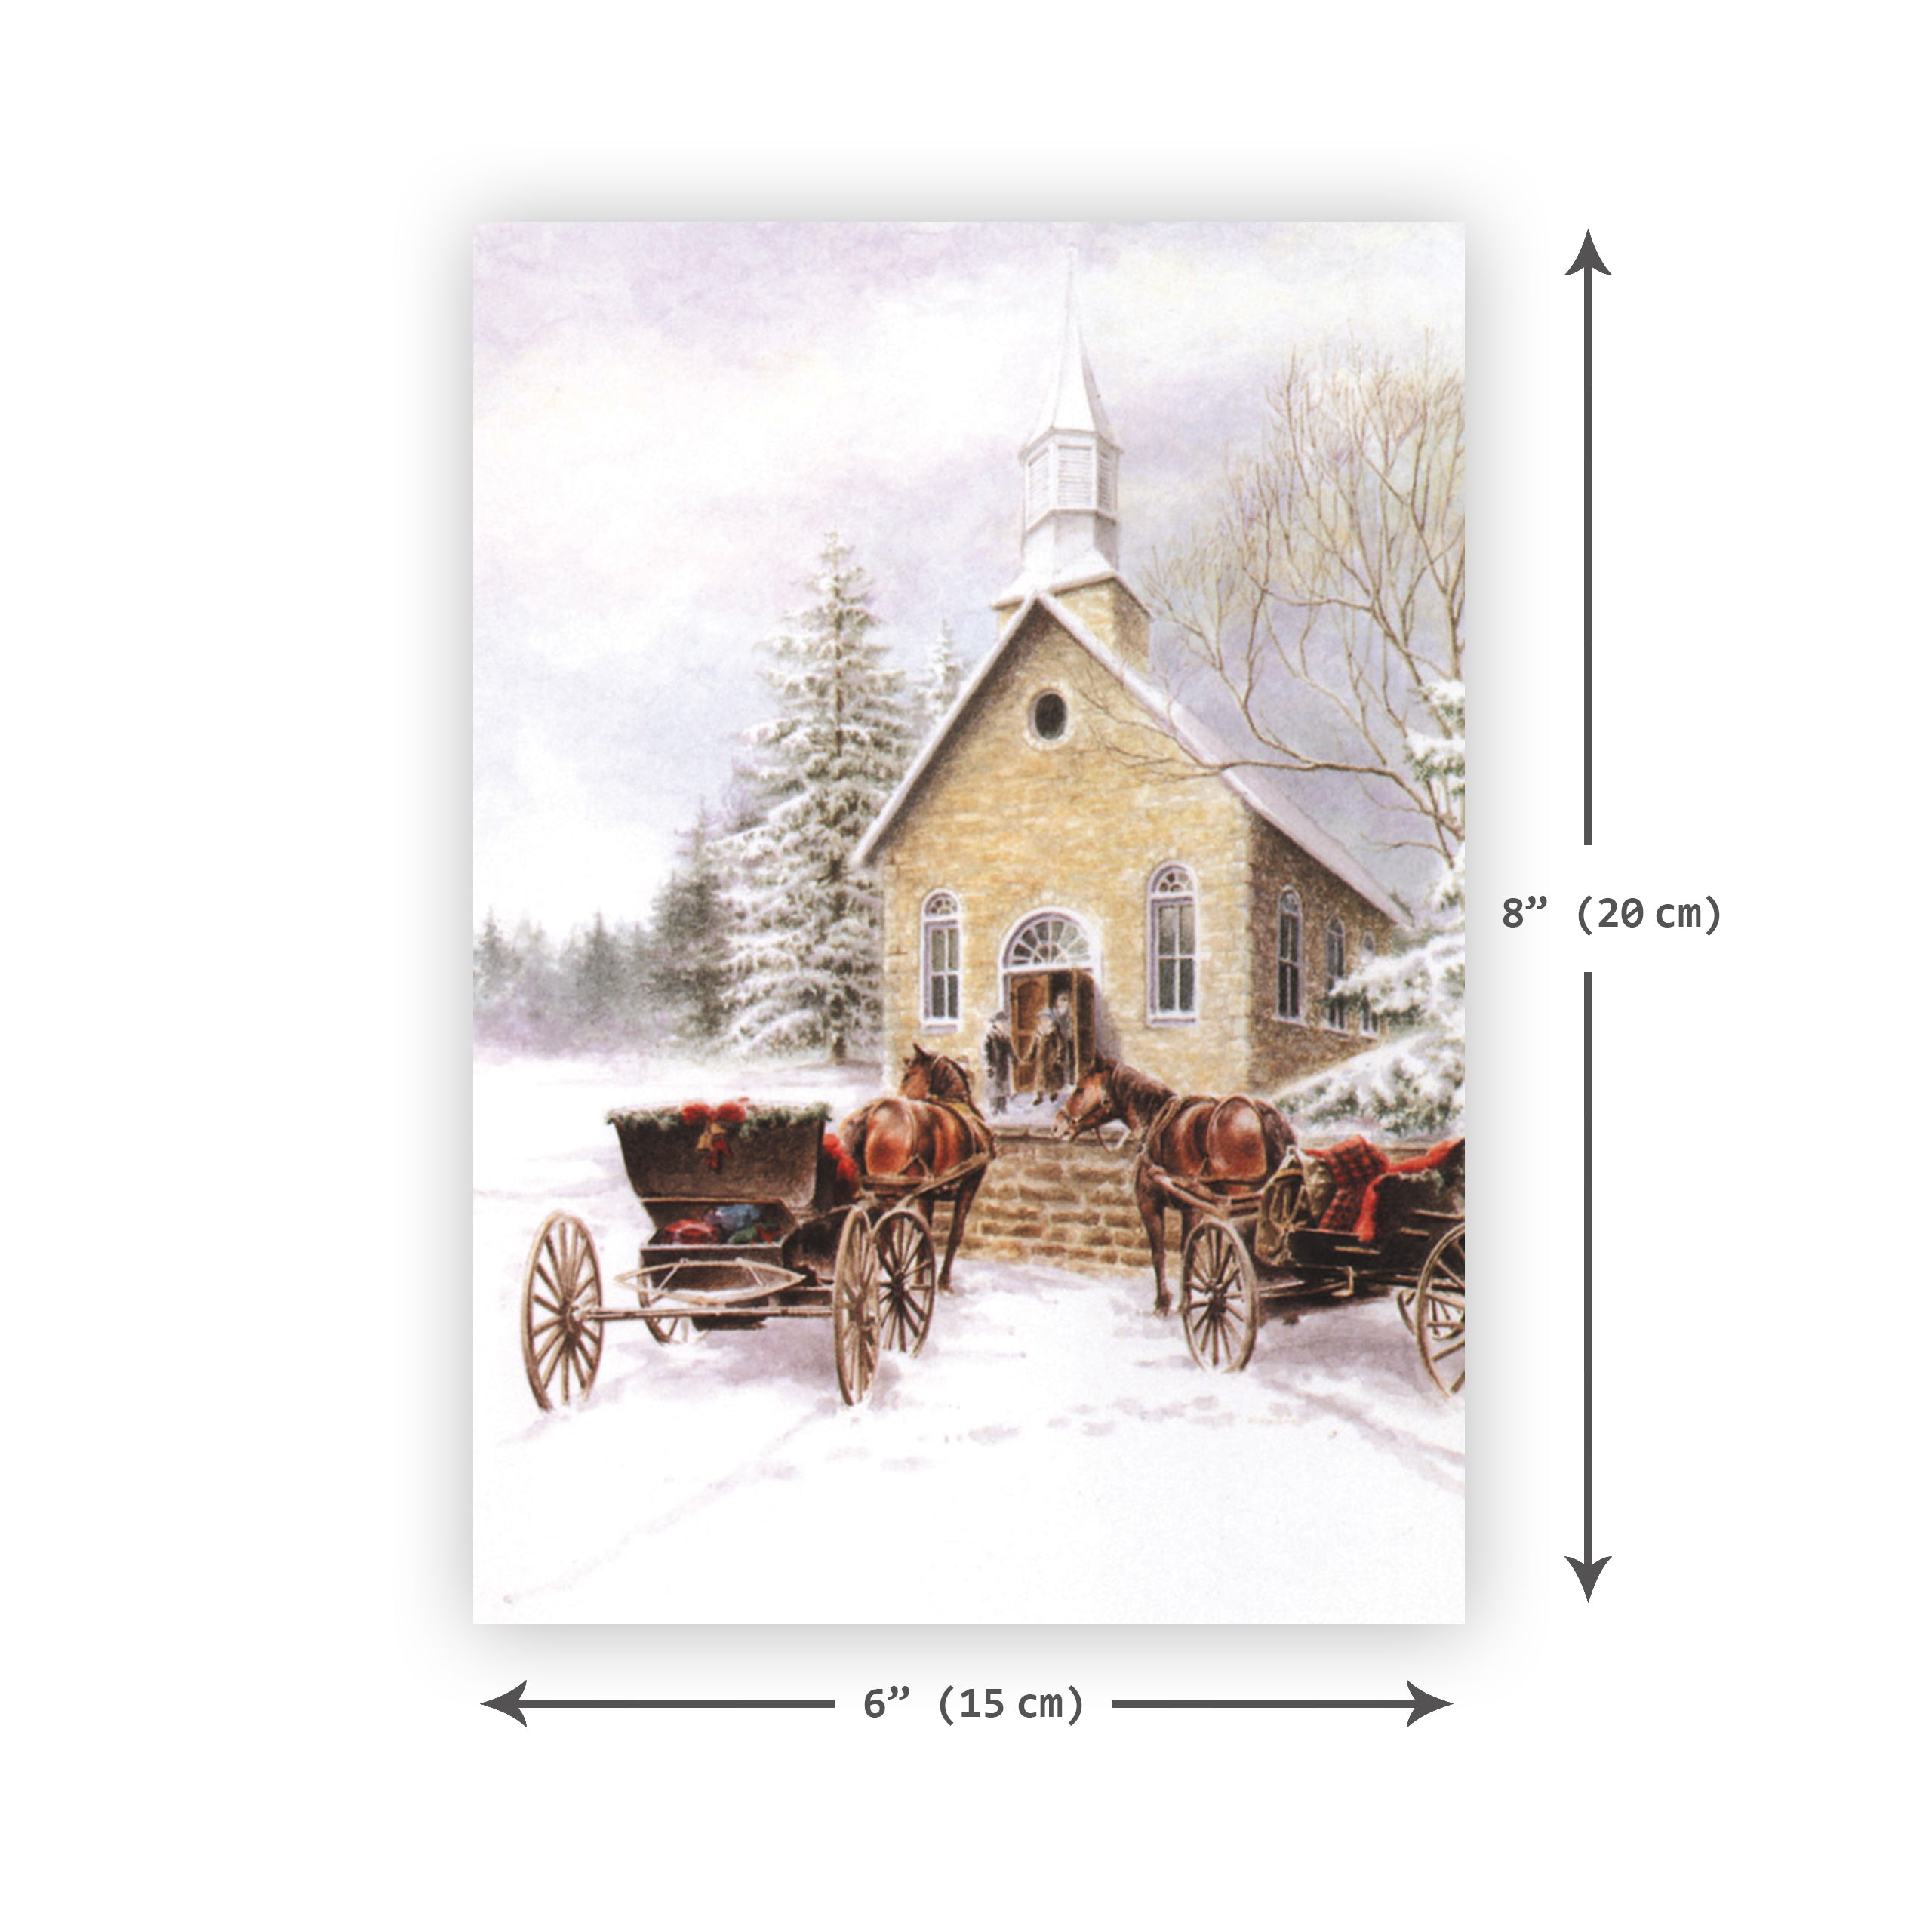 'Small Town Christmas' Merry Christmas Card - Northern Cards size